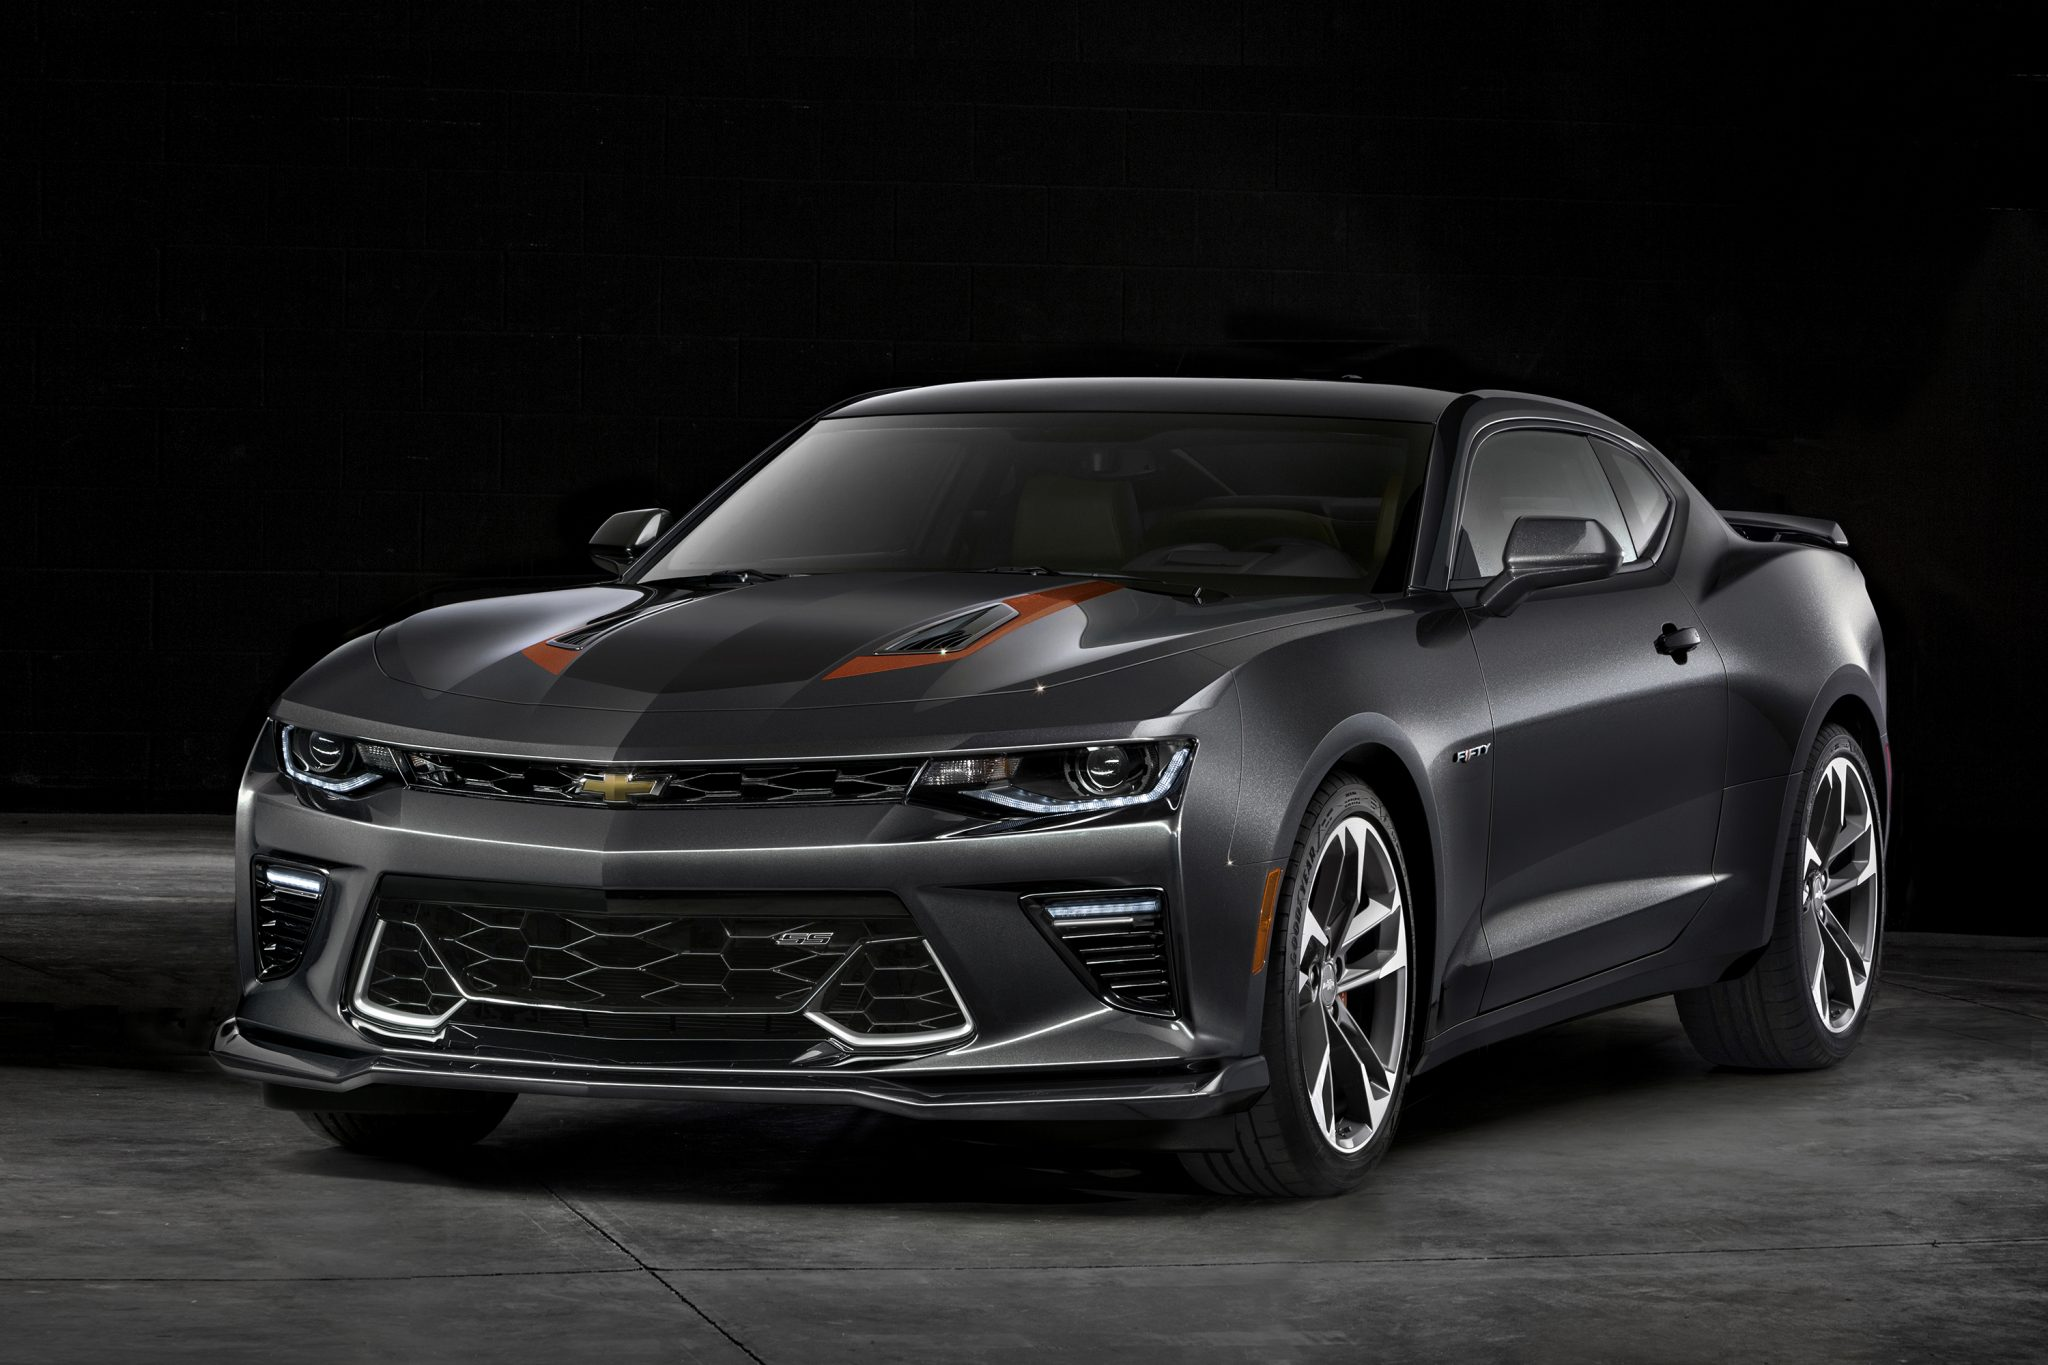 2017 Chevrolet Camaro Zl1 Convertible Debuts At New York Show F1 Rocket Engine Diagram 2 196